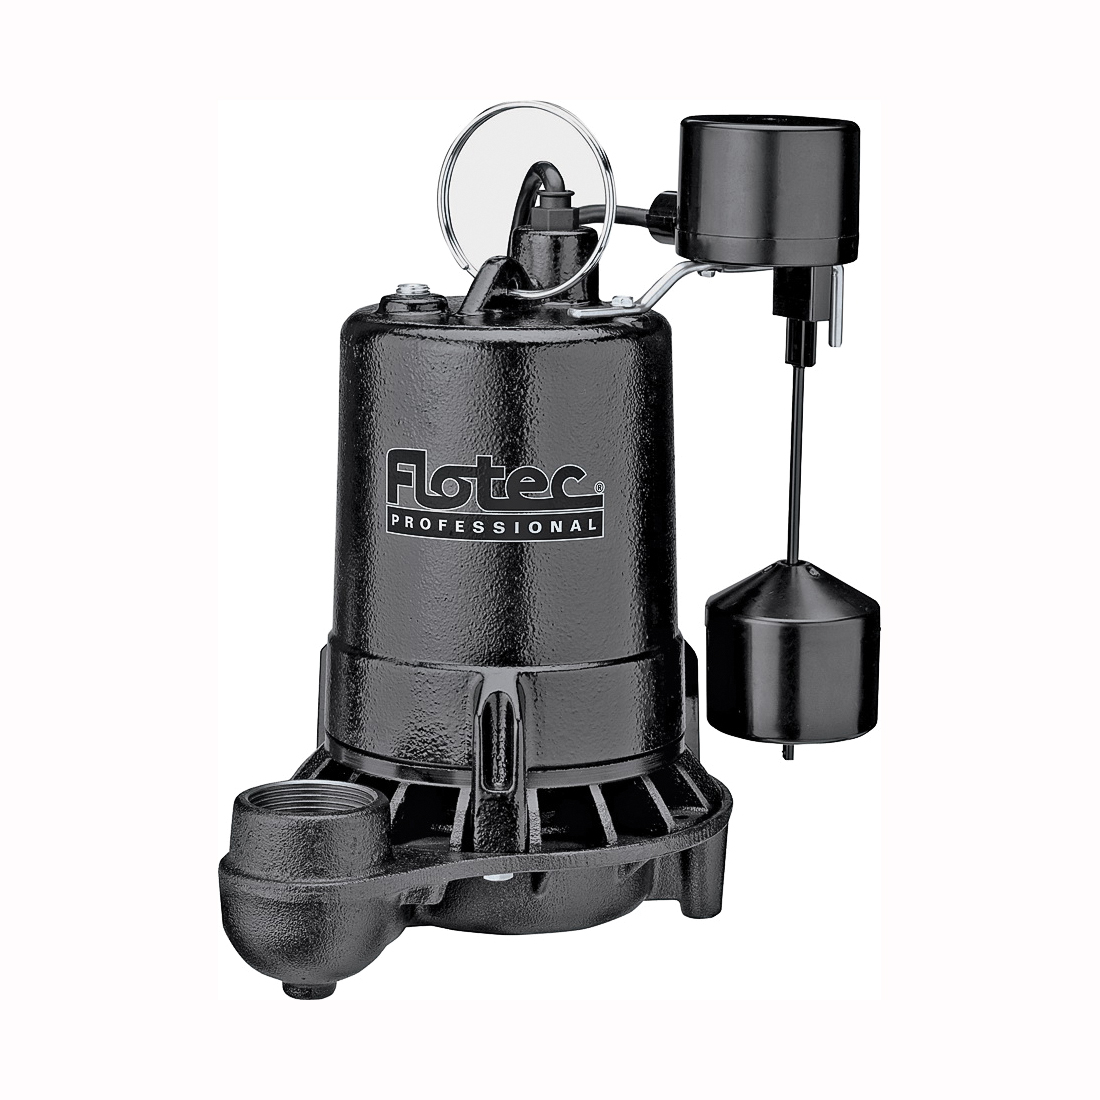 Picture of Flotec Professional E50VLT Sump Pump, 1-Phase, 6 A, 115 V, 0.5 hp, 1-1/2 in Outlet, 22 ft Max Head, 1020 gph